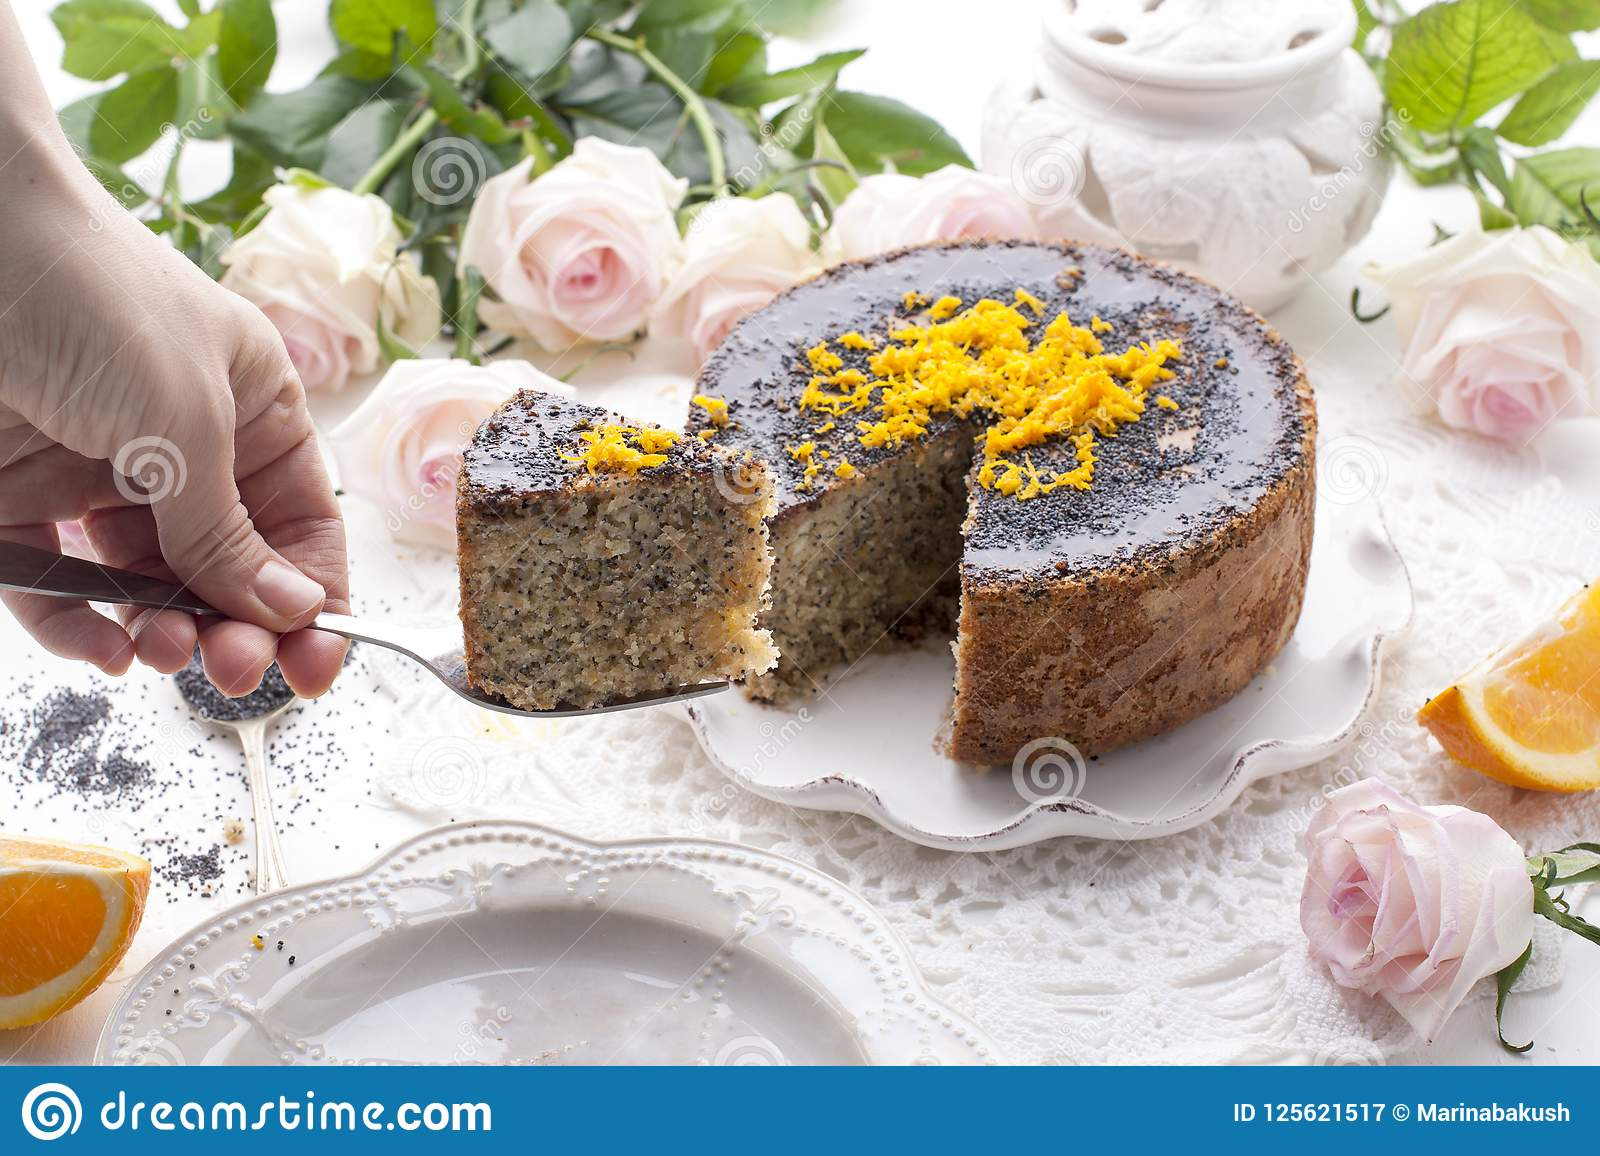 Chocolate Cake With Orange And Icing  On A White Background